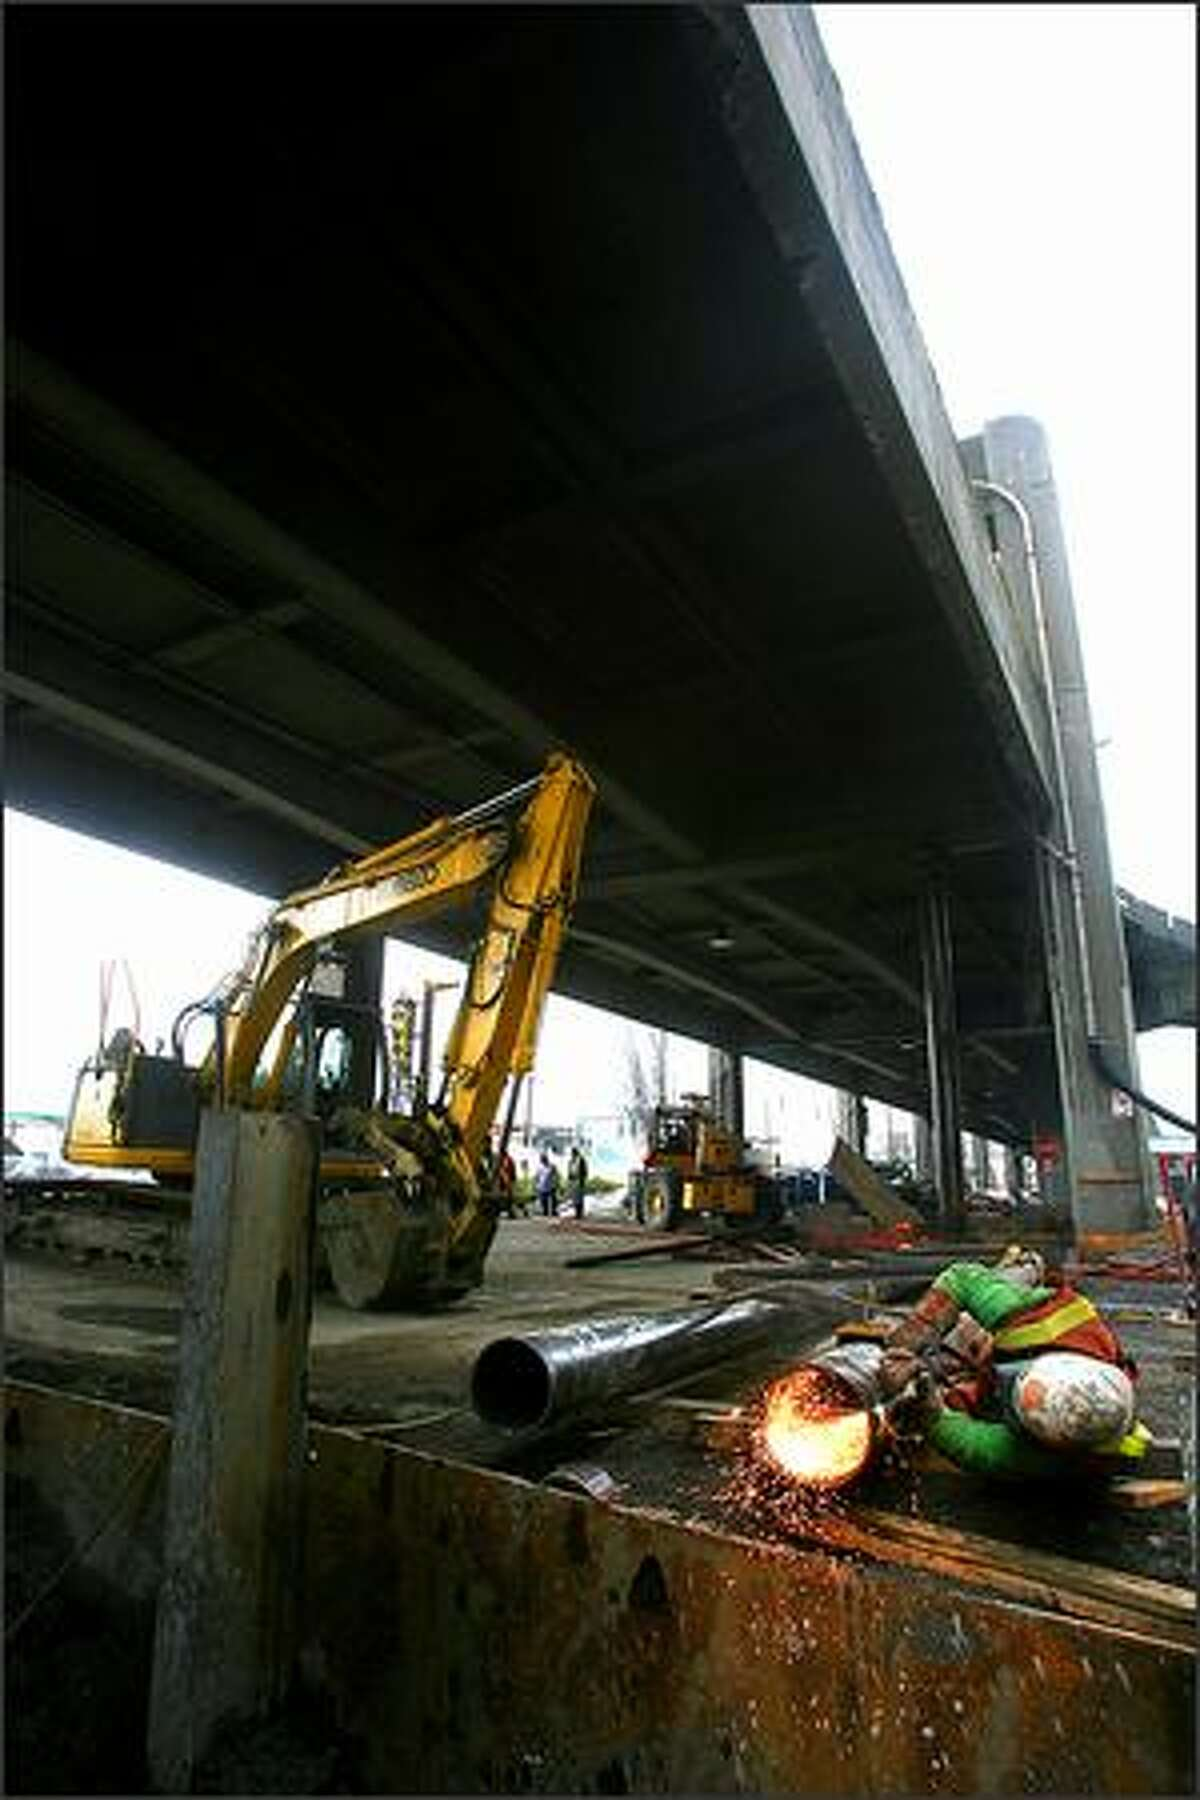 Doug Woods uses an oxy acetylene cutting torch as he cuts off the bottom of one of the temporary support columns that will be used to stabalize the viaduct during construction.